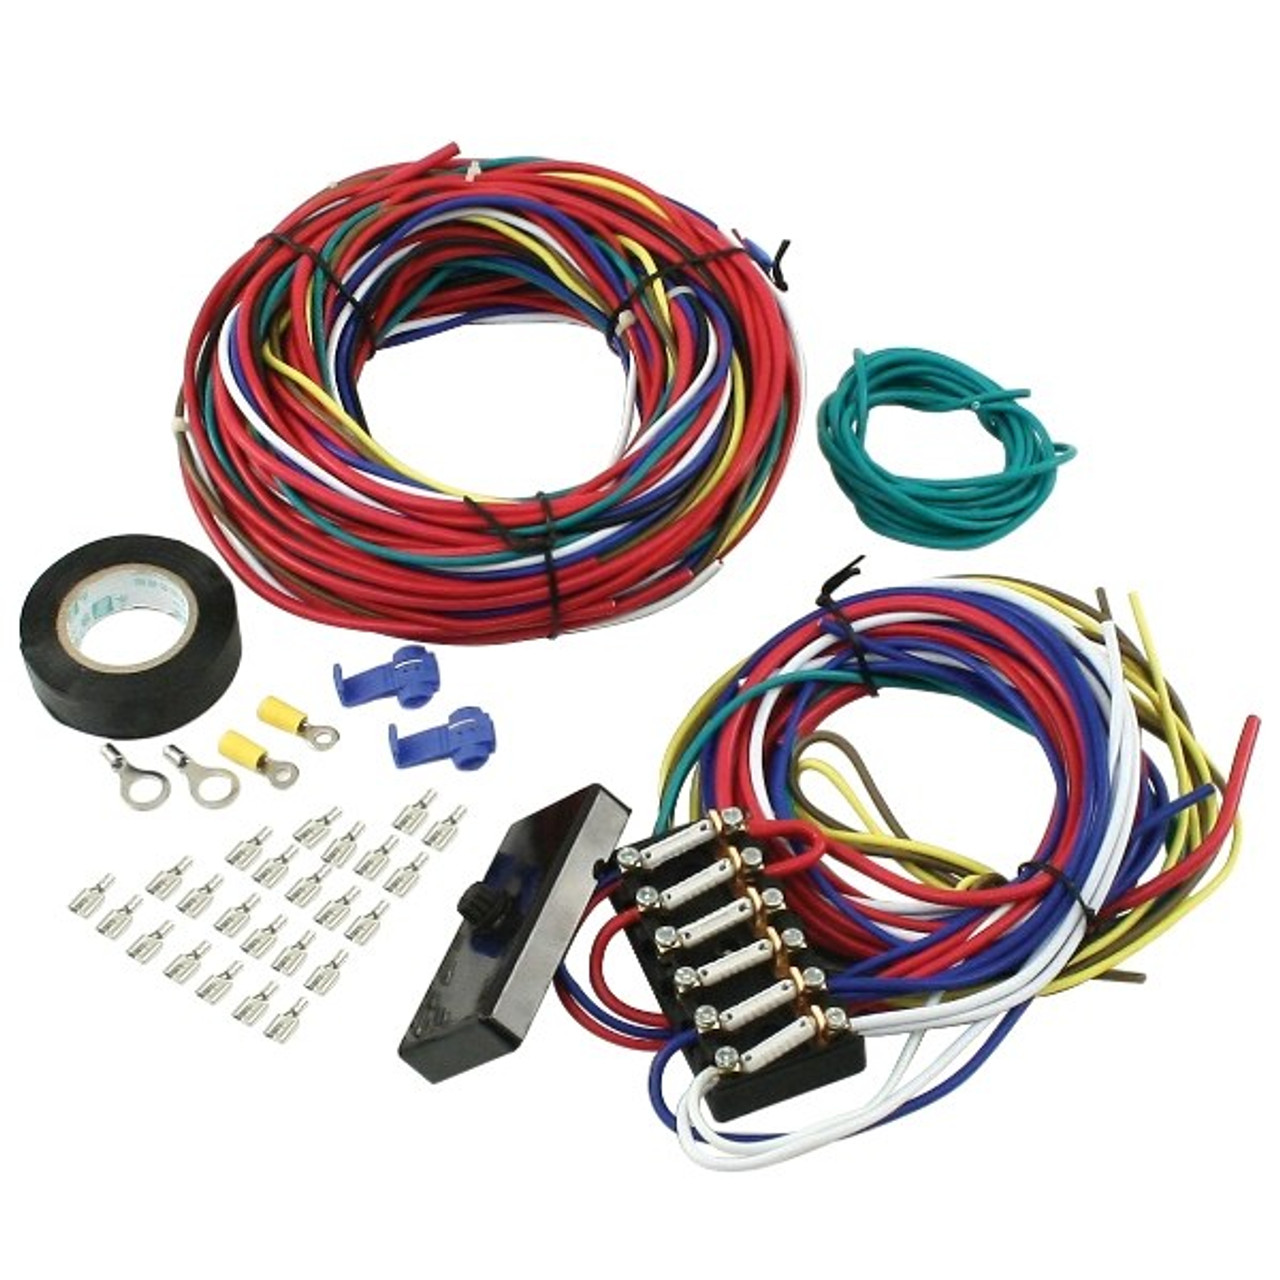 VW Universal Wiring Harness | Complete Wiring KitMoore Parts Source